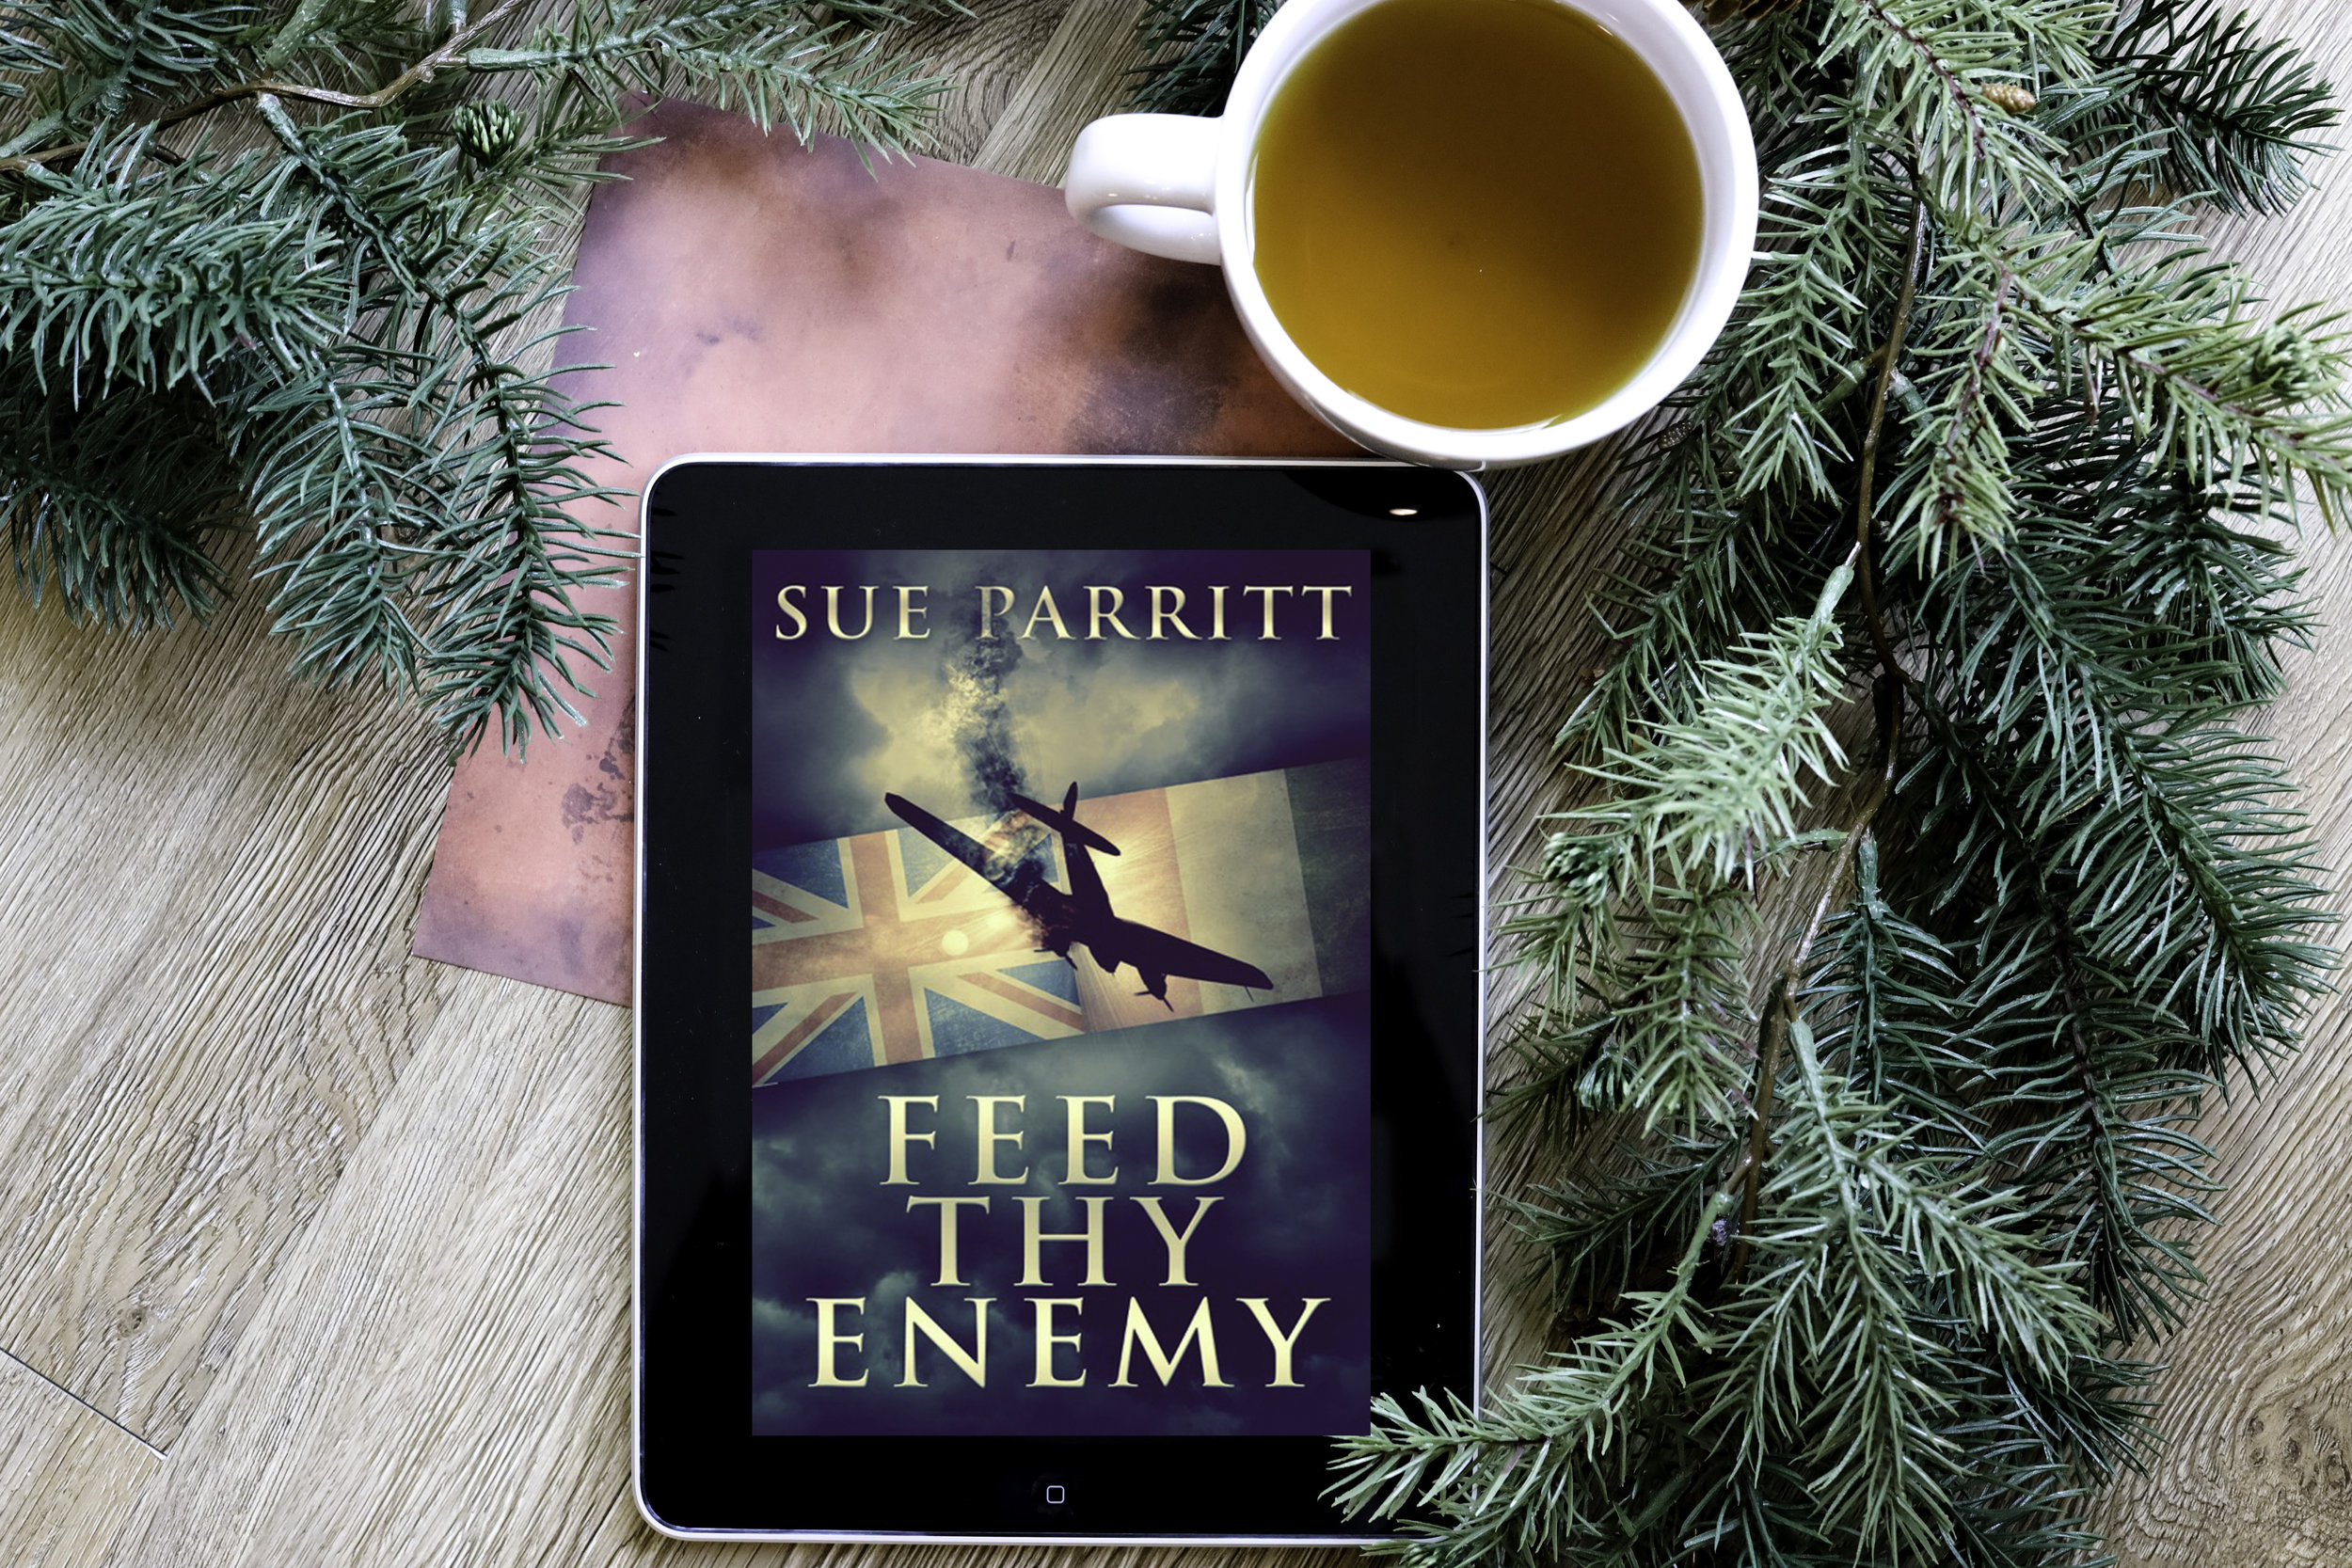 feed thy enemy sue parritt